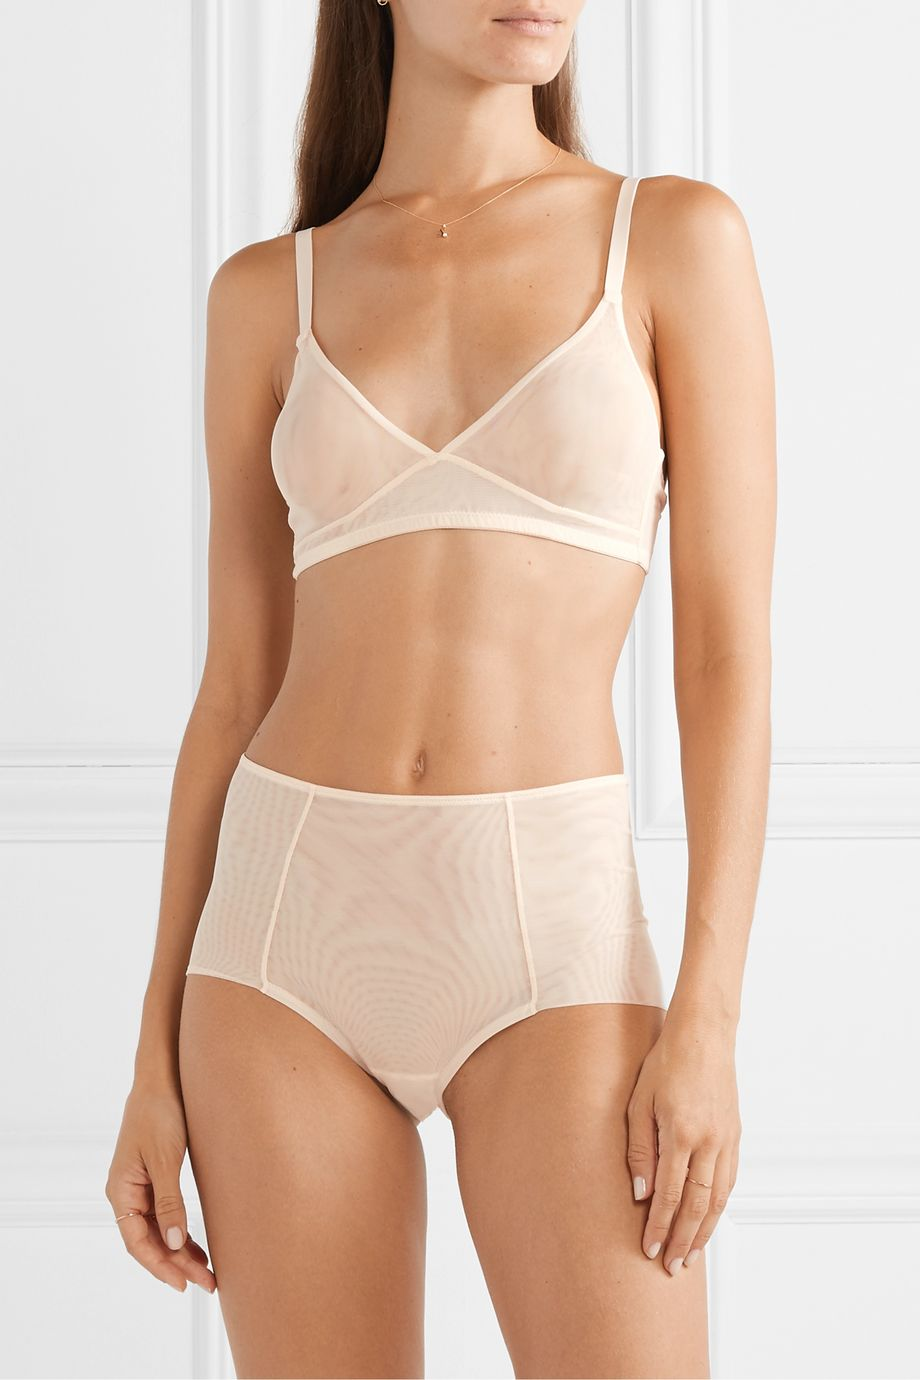 The Great Eros Canova stretch-tulle soft-cup bra